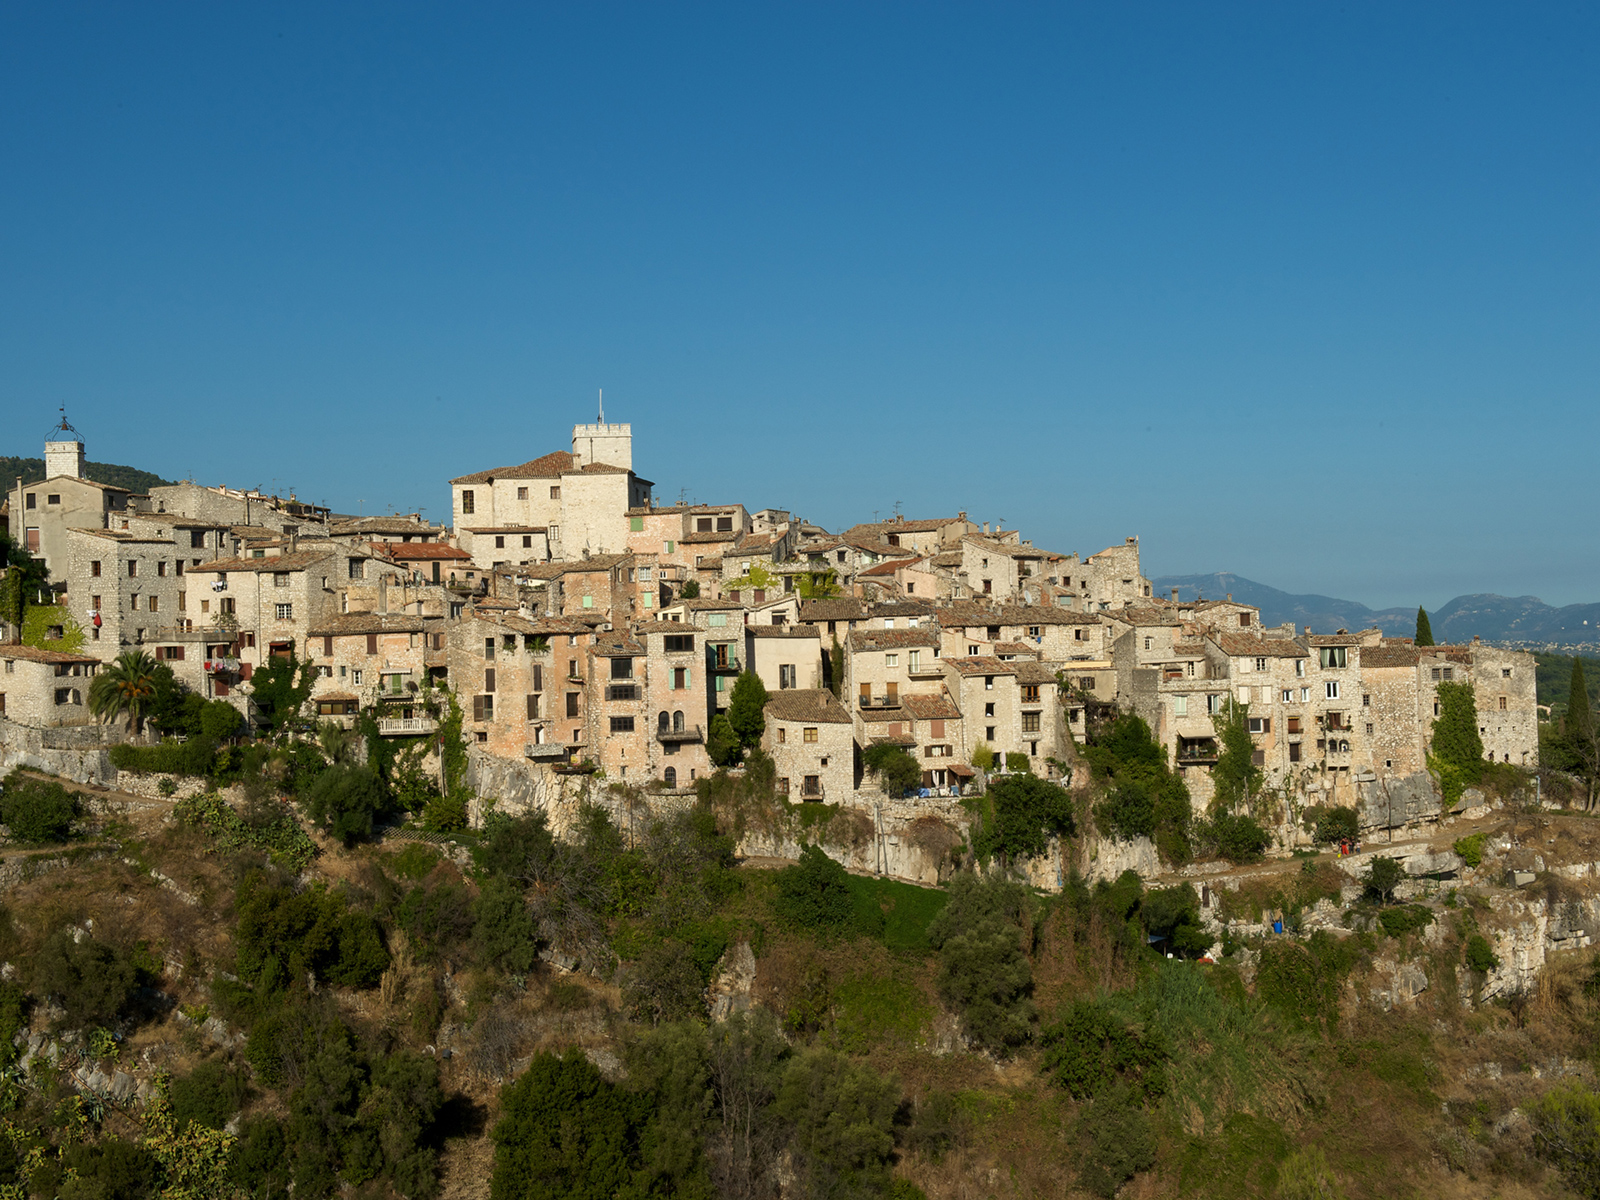 the village of Tourrettes-Sur-Loup in the Alpes Maritimes, France